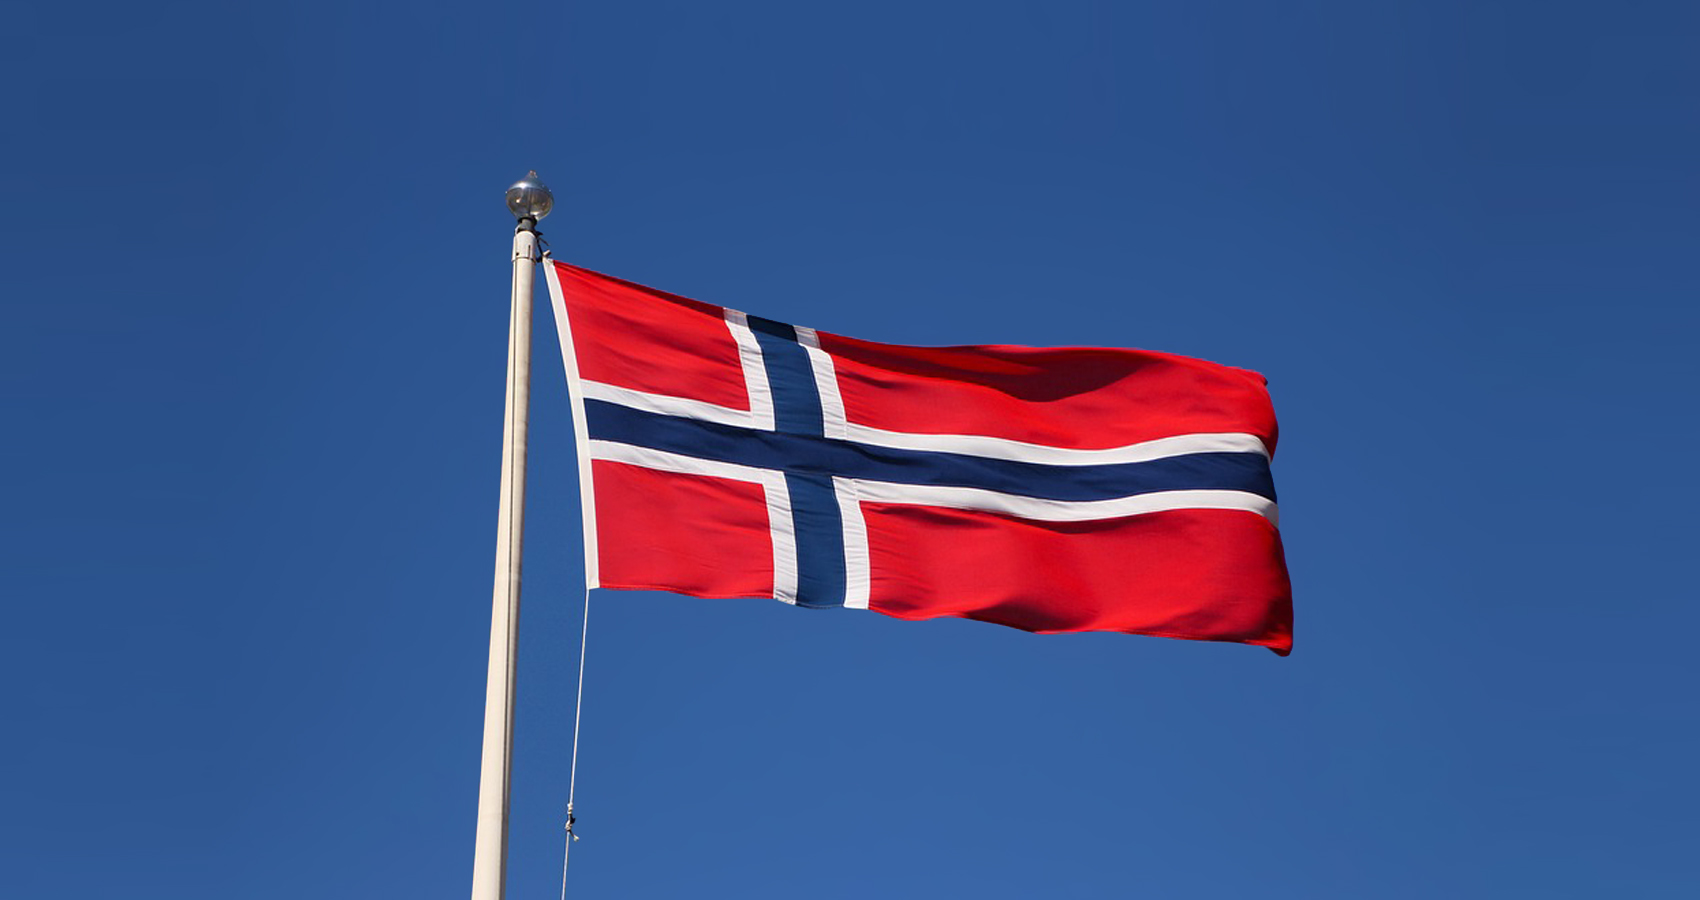 Norwegian Finance Minister Bitcoin has gone through fluctuations